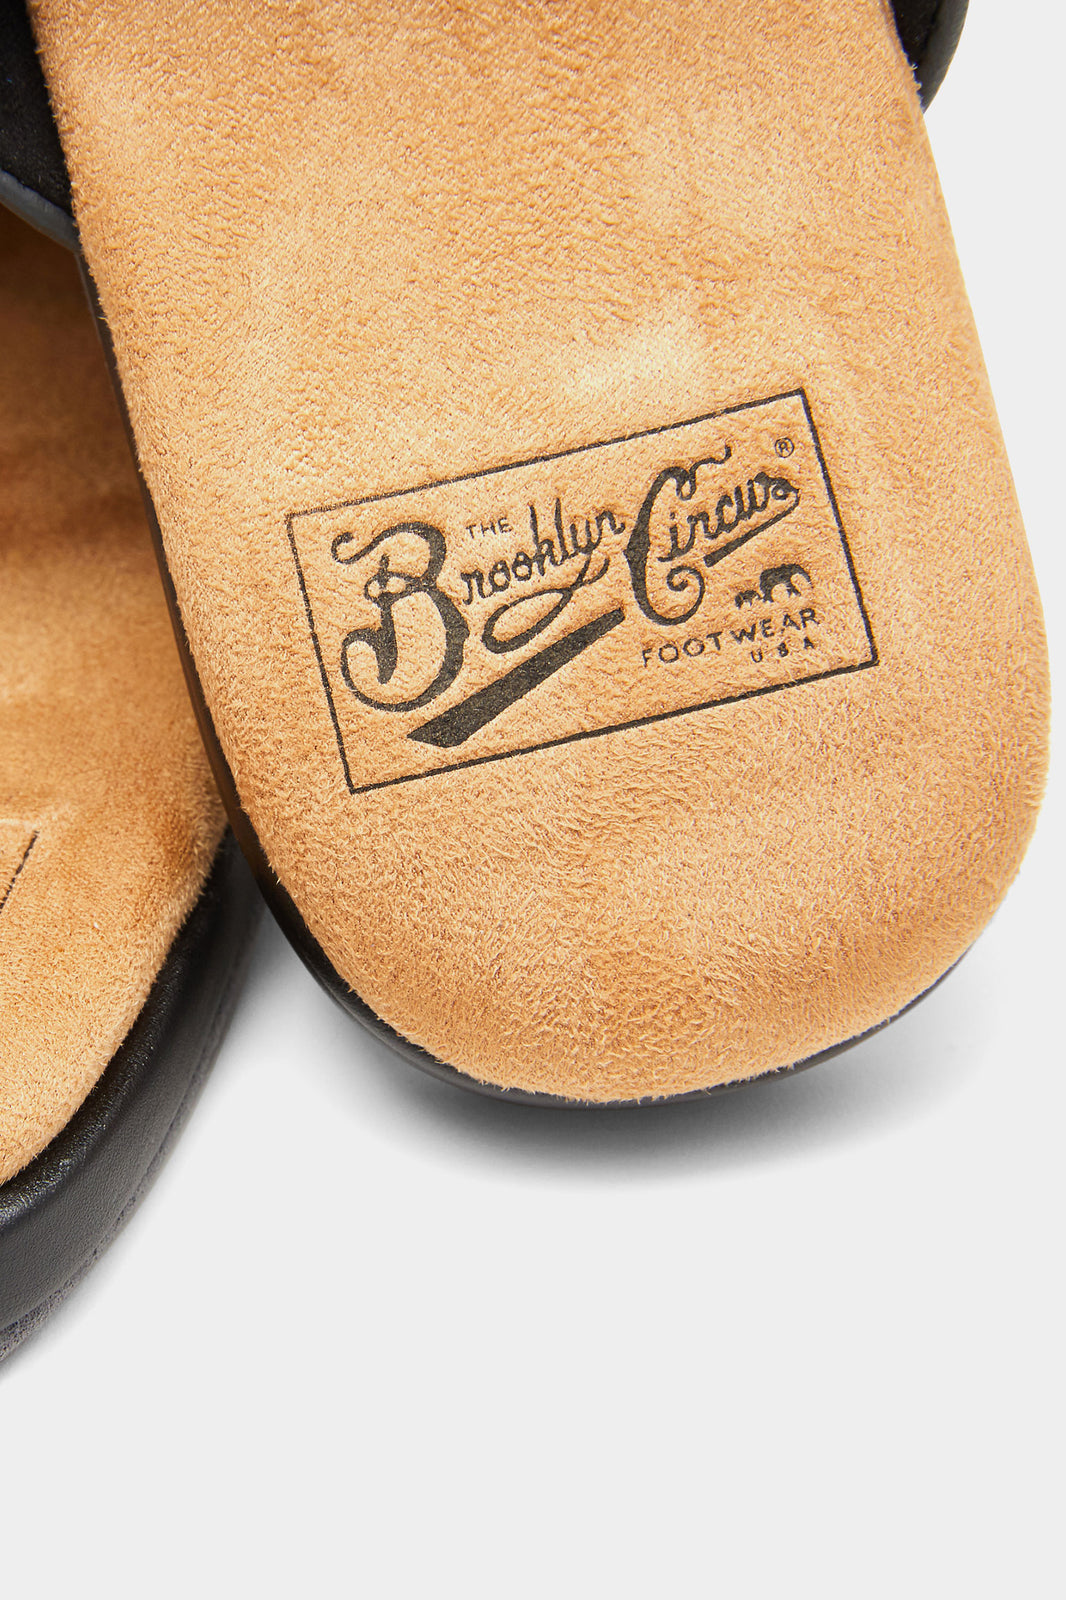 The Brooklyn Circus/BKc Double Black Home Slipper Ver.2